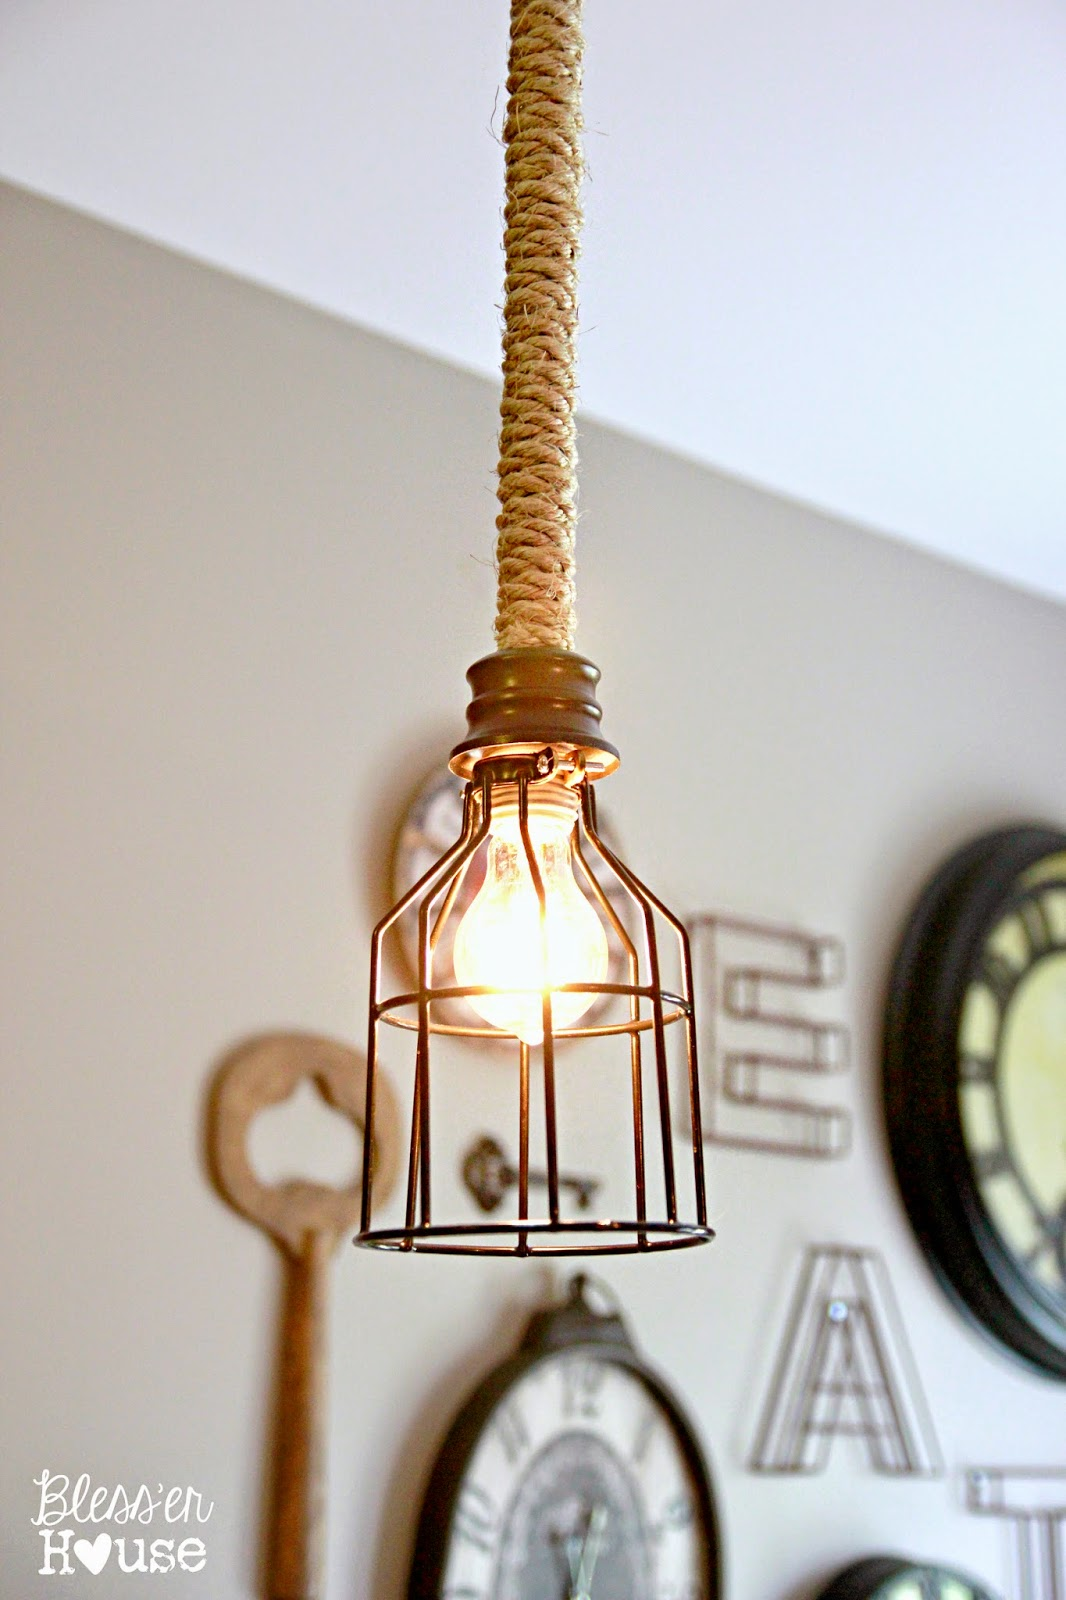 living light creative american products personality rope loft image buy for bulb pendant vintage industrial room edison style lamp product